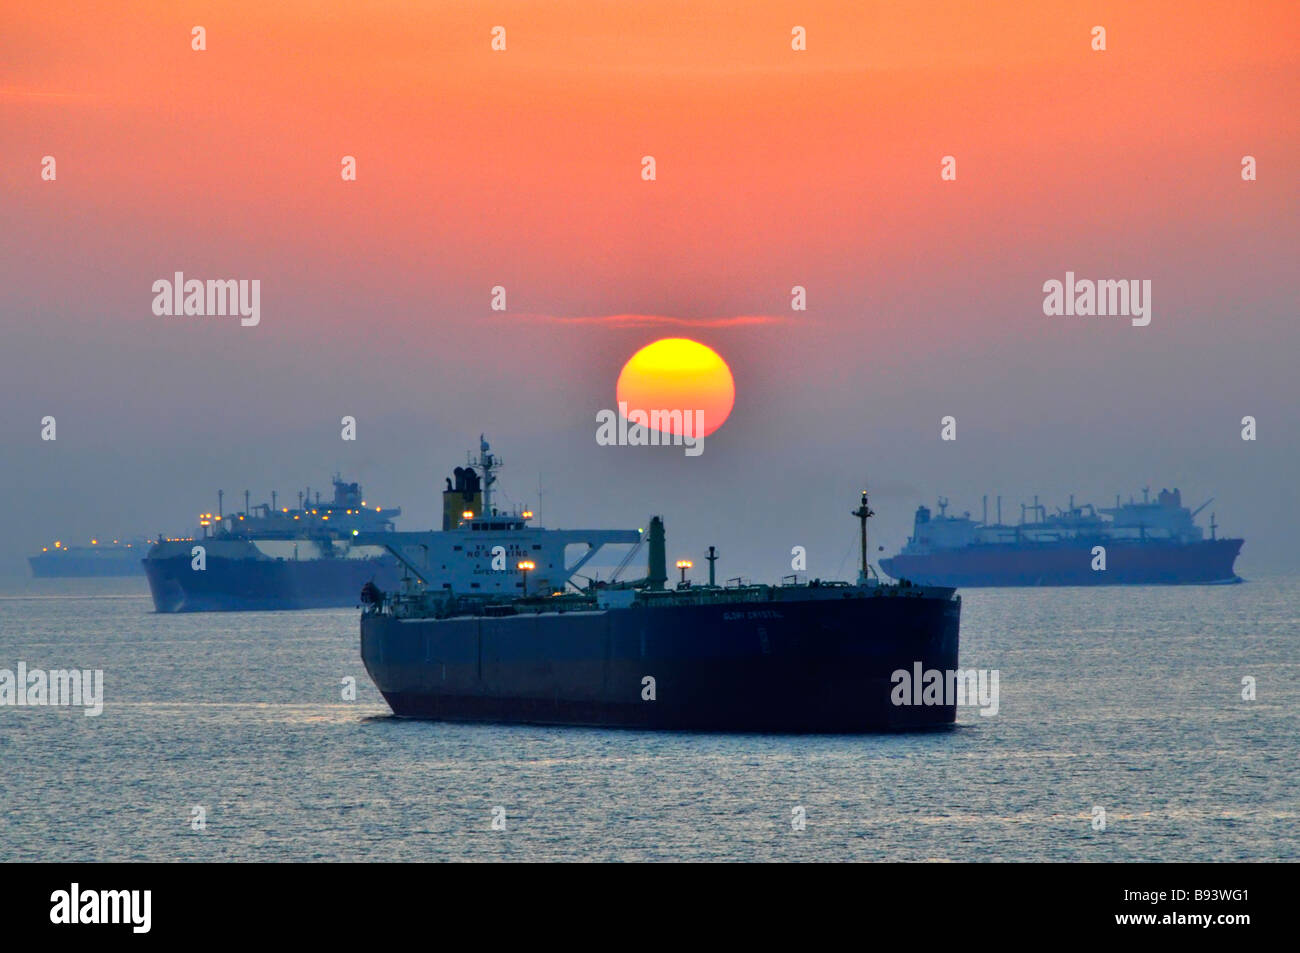 Shipping including bulk carriers & oil tankers at anchor off coast of Fujairah in Gulf of Oman near Straits - Stock Image